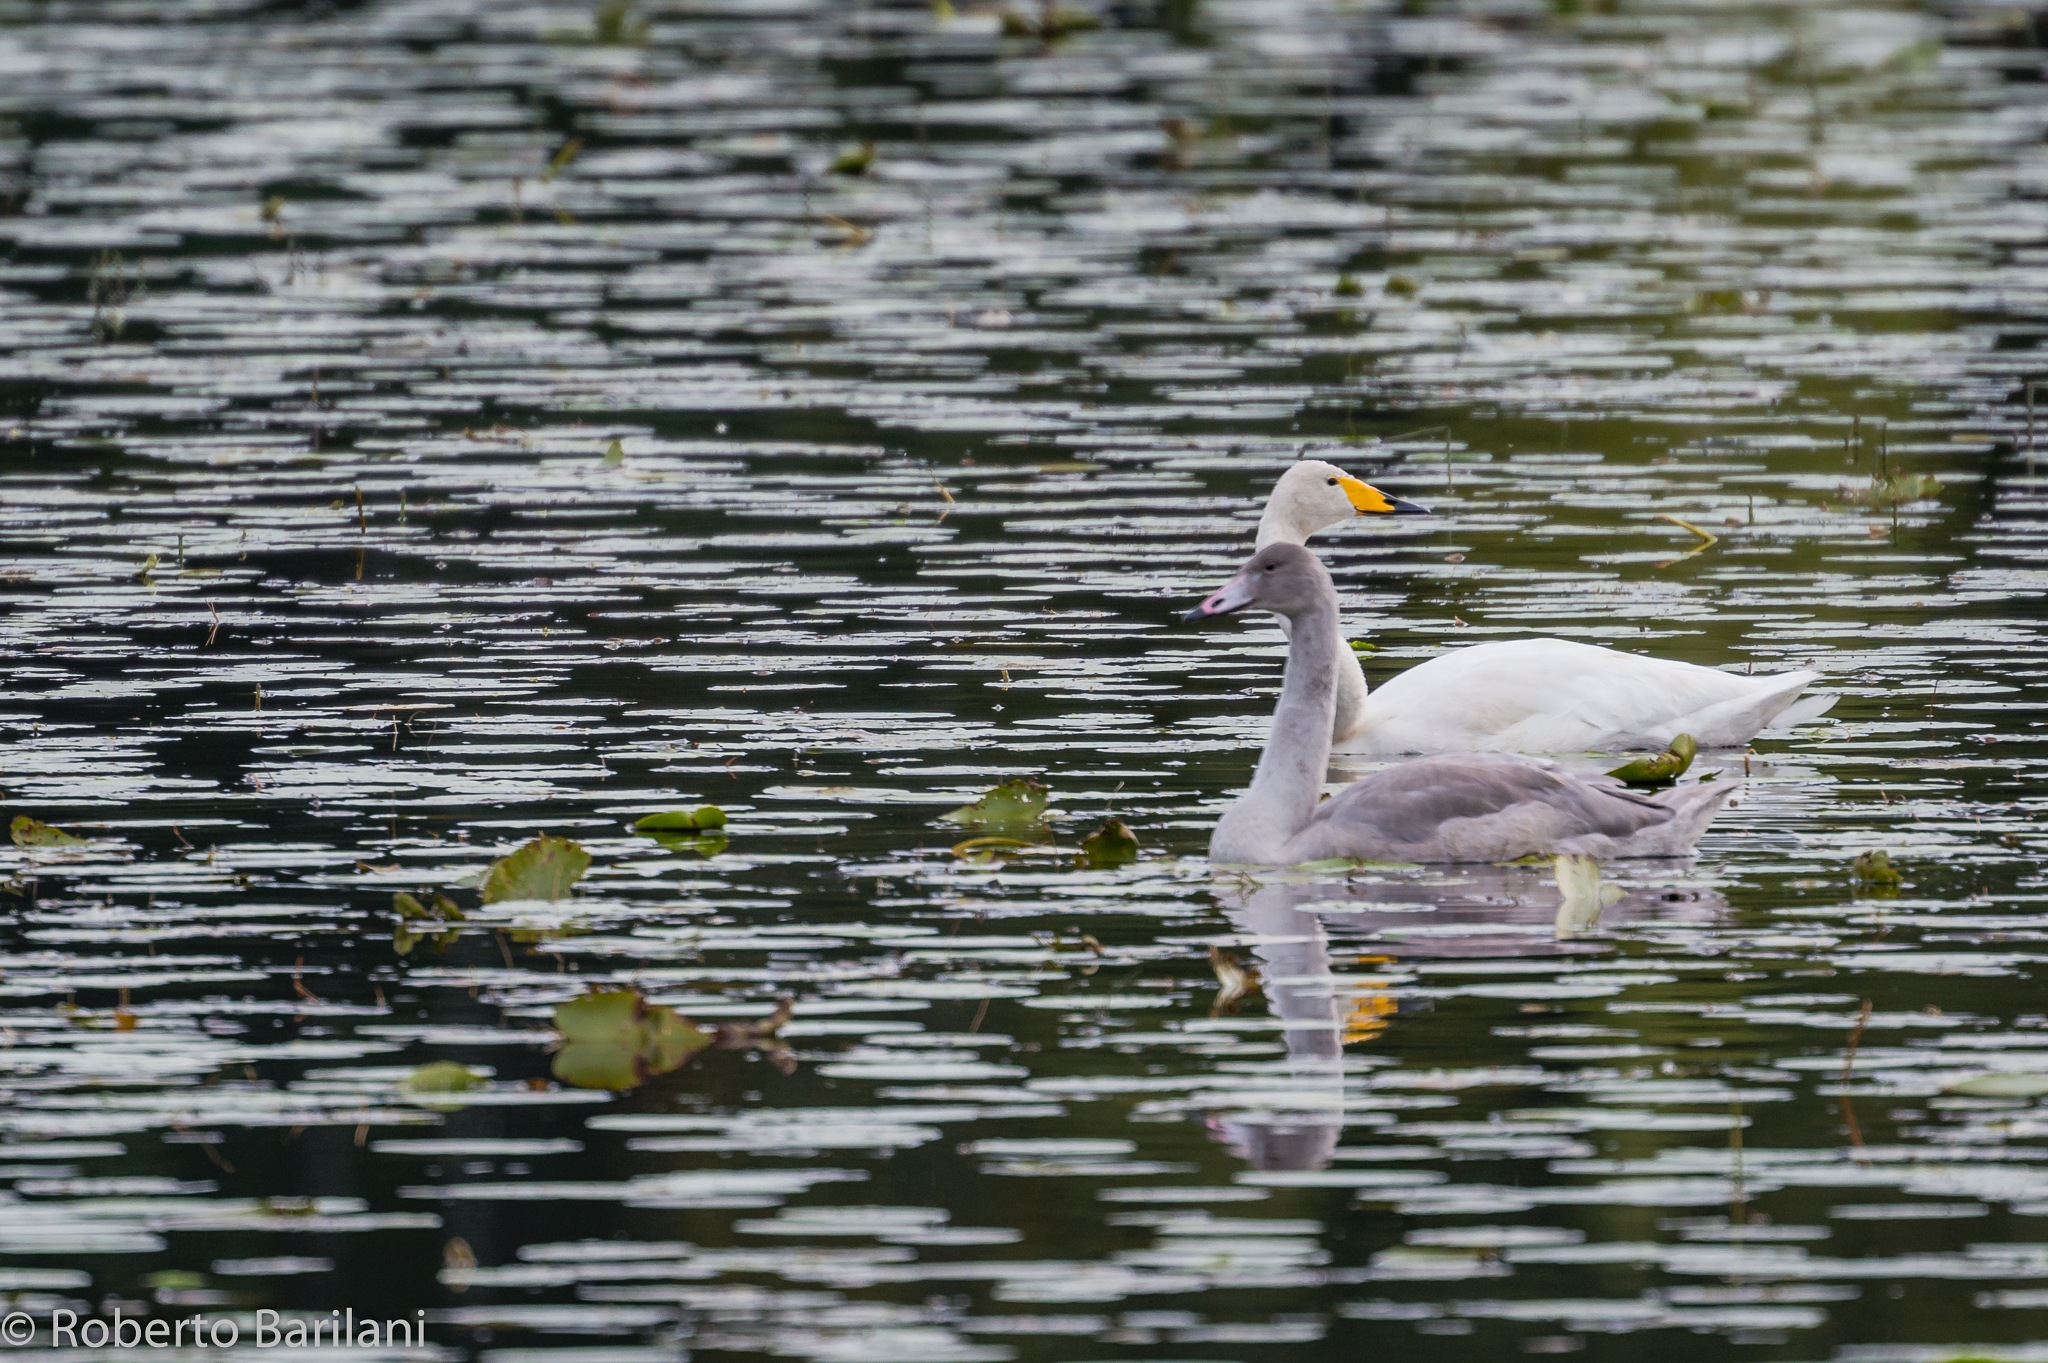 Whooper Swans - Full screen recommended by Roberto Barilani